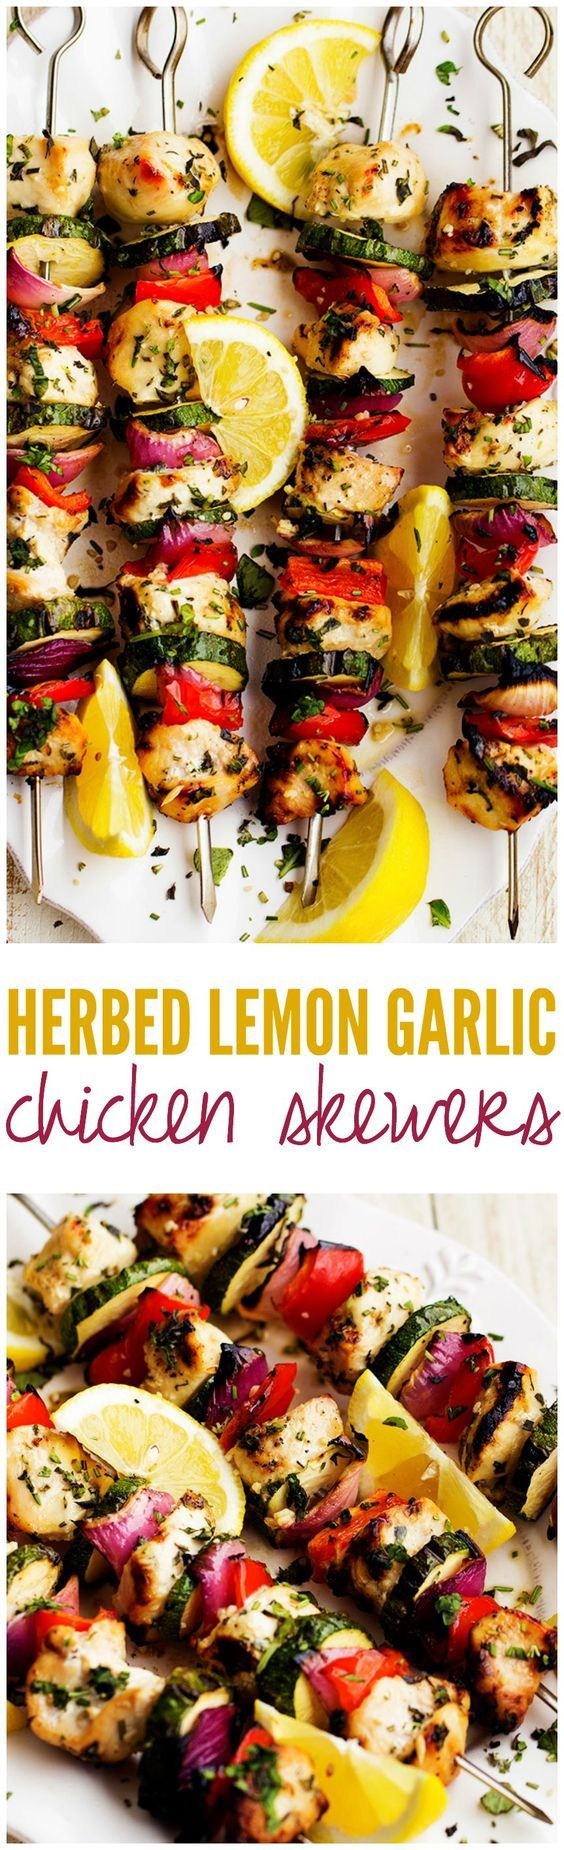 Fresh lemon, herbs, and garlic come together in this fast and flavorful marinade. Complemented with fresh and bright summer veggies in this amazing meal that is under 400 calories!